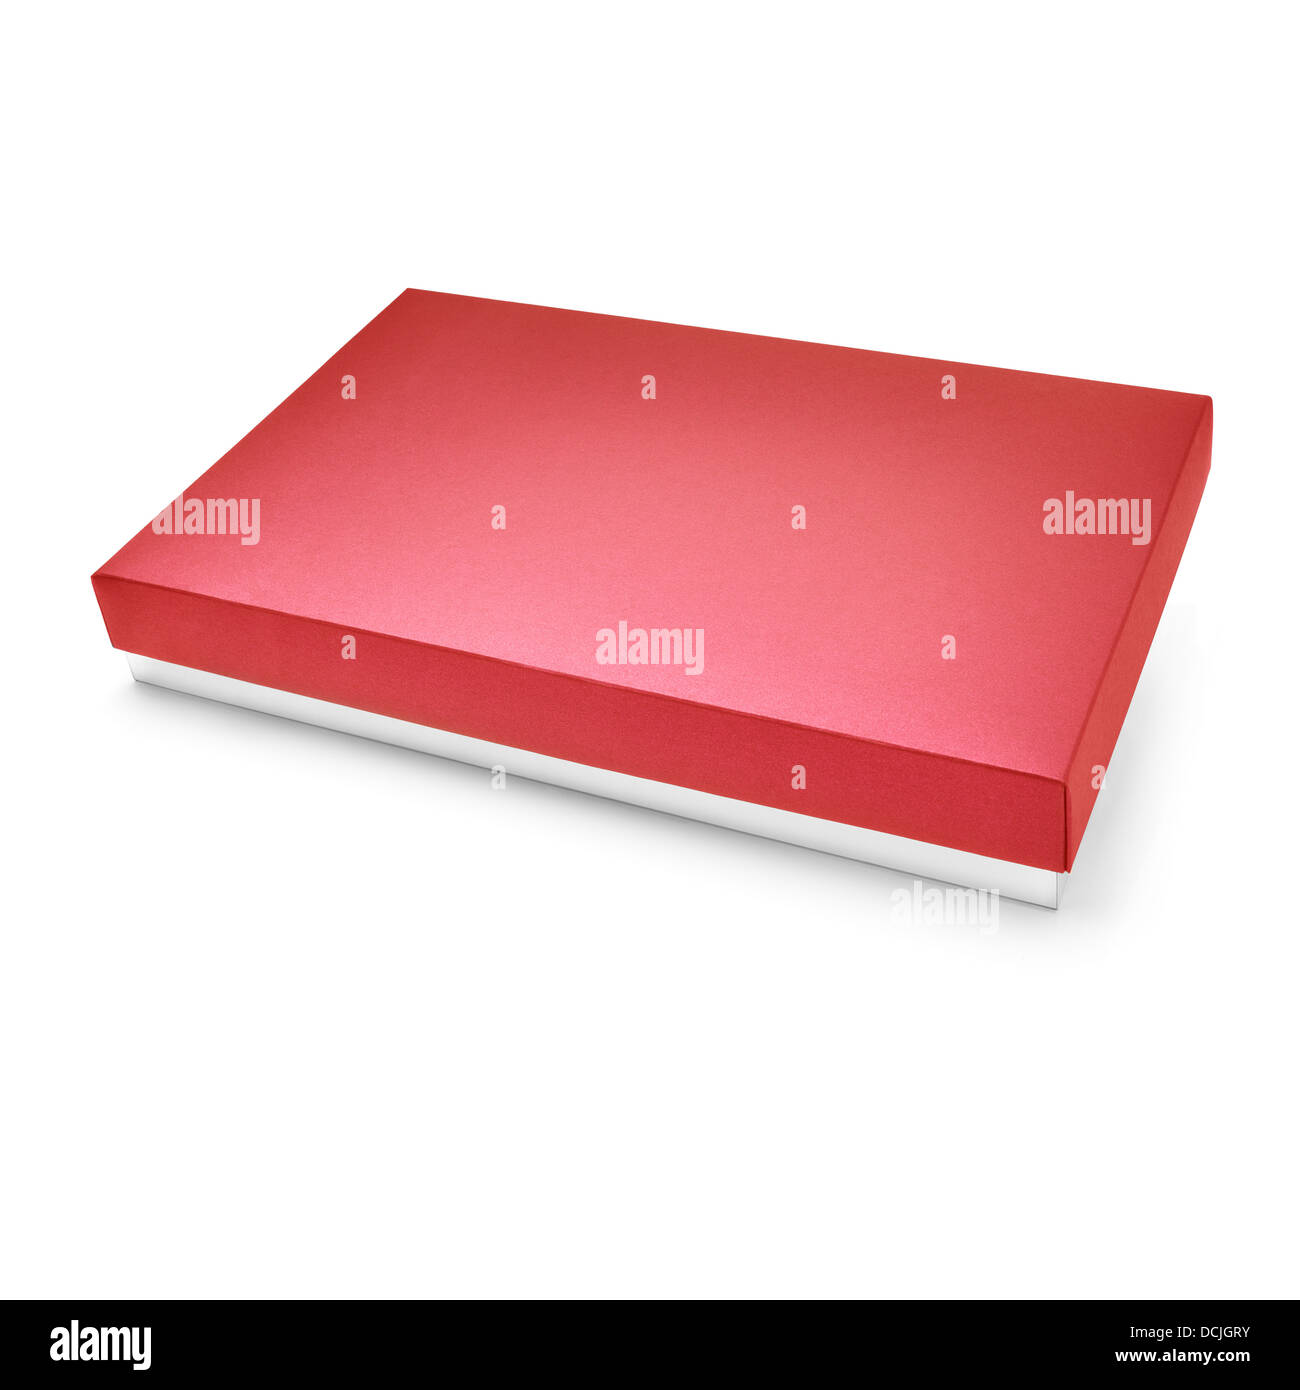 Red color cardboard box on white background - Stock Image